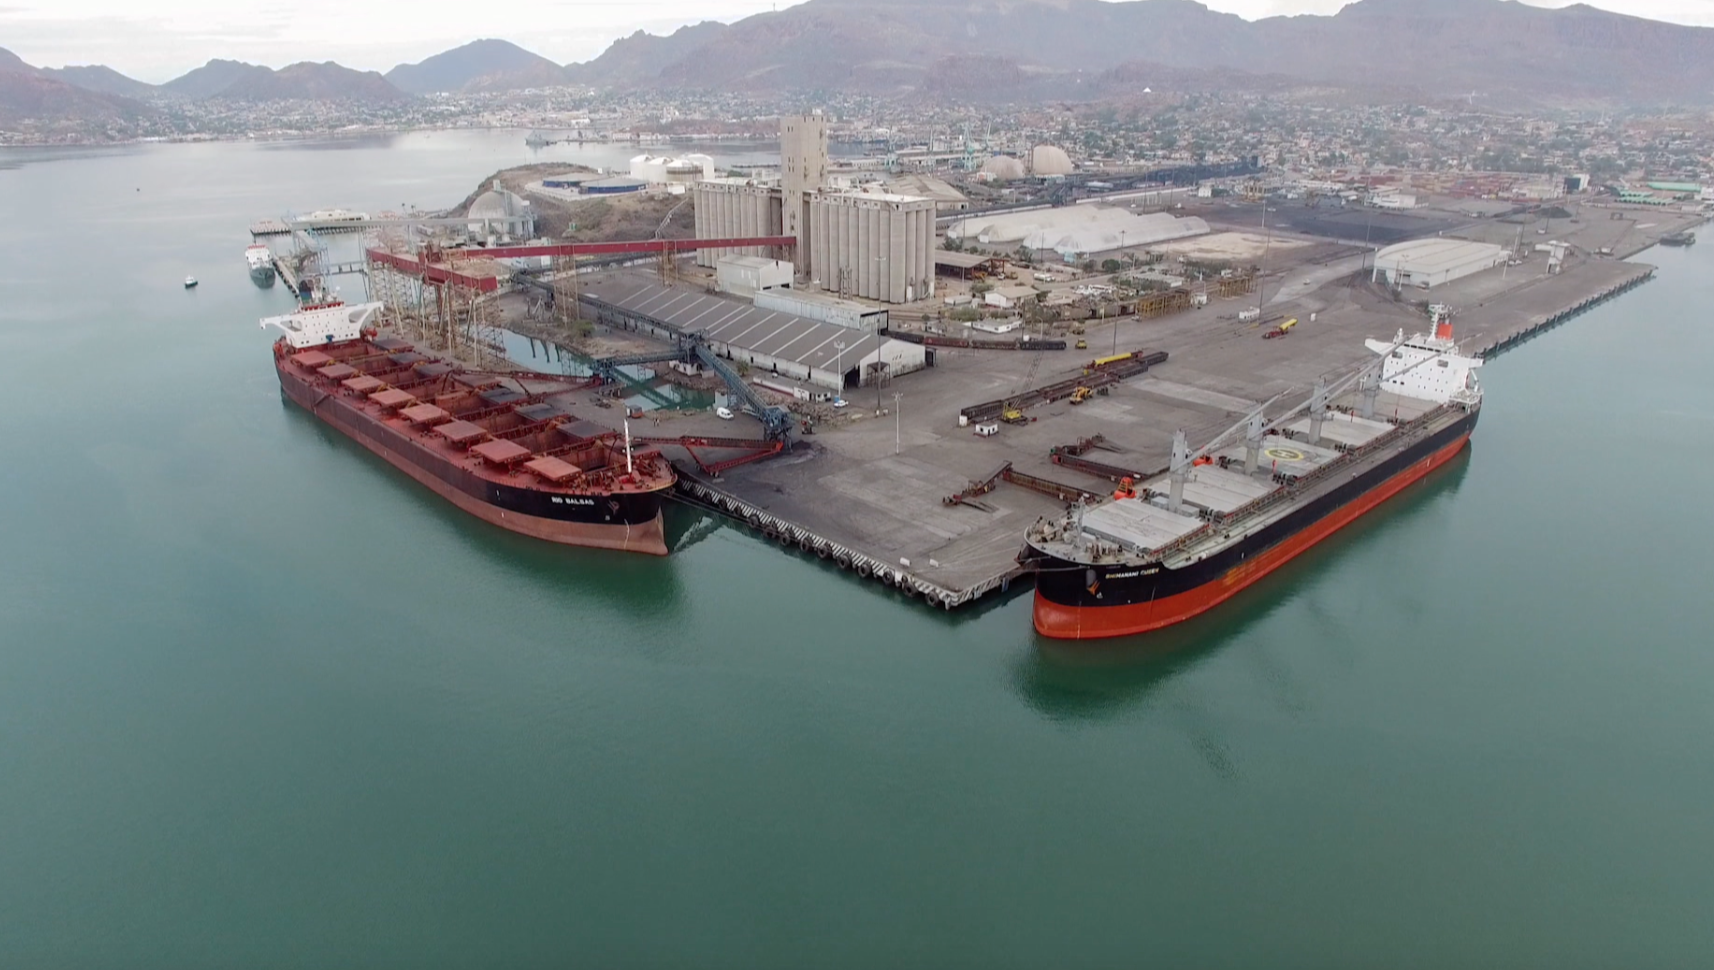 The Port of Guaymas can handle ships carrying up to 125,000 tons of cargo.